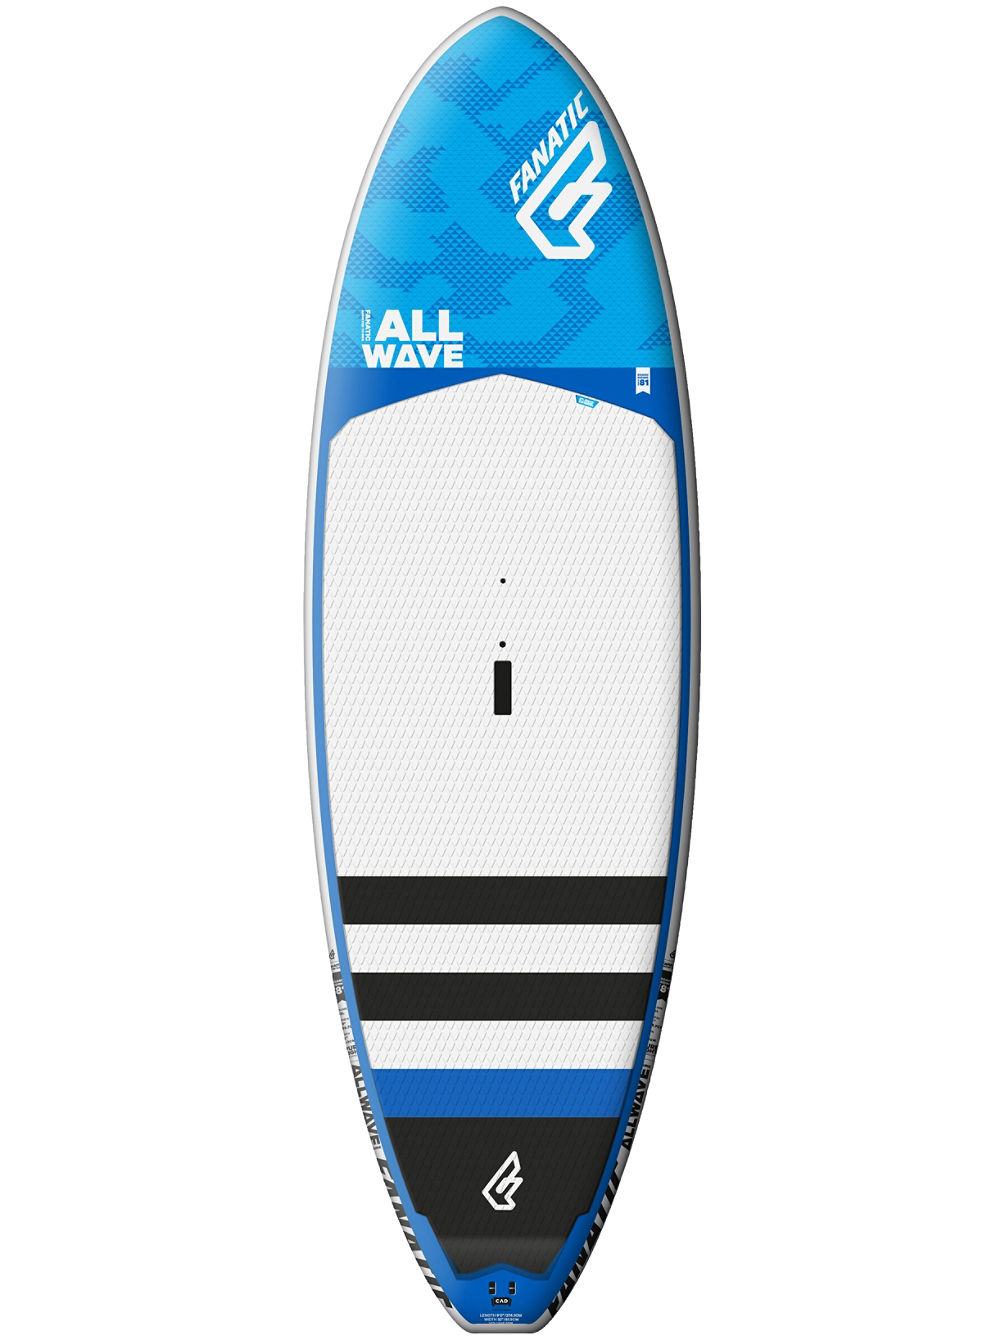 Allwave Pure Light 9.0 SUP Board